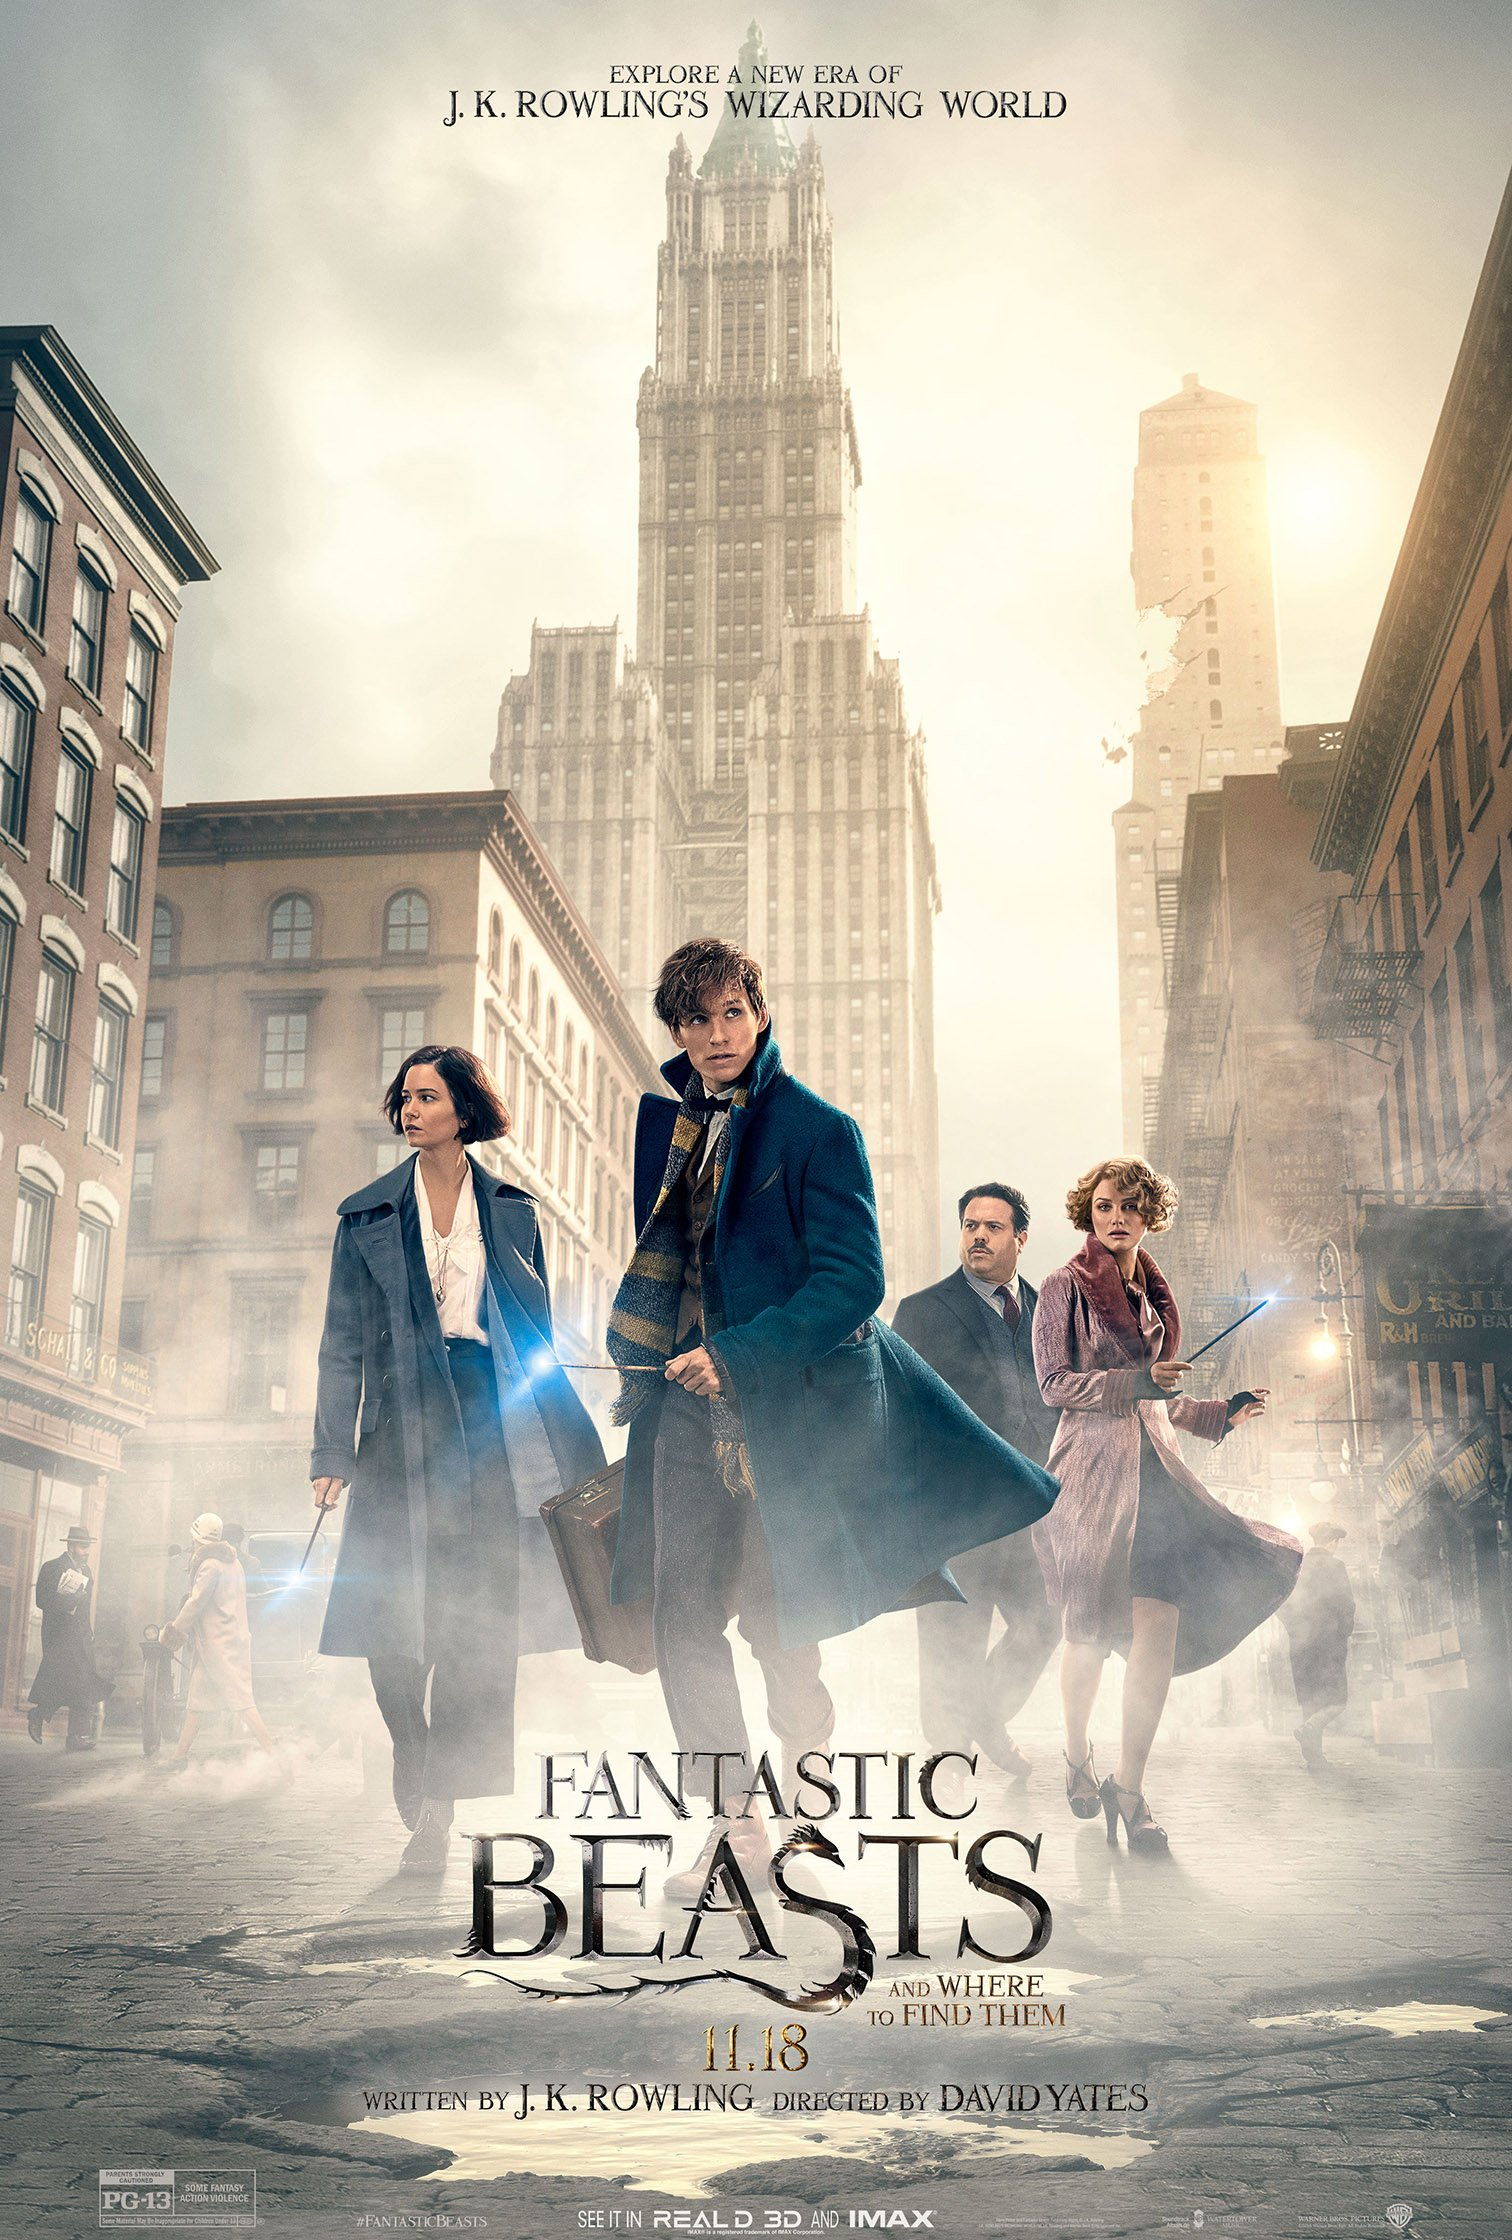 A poster for 'Fantastic Beasts and Where to Find Them'